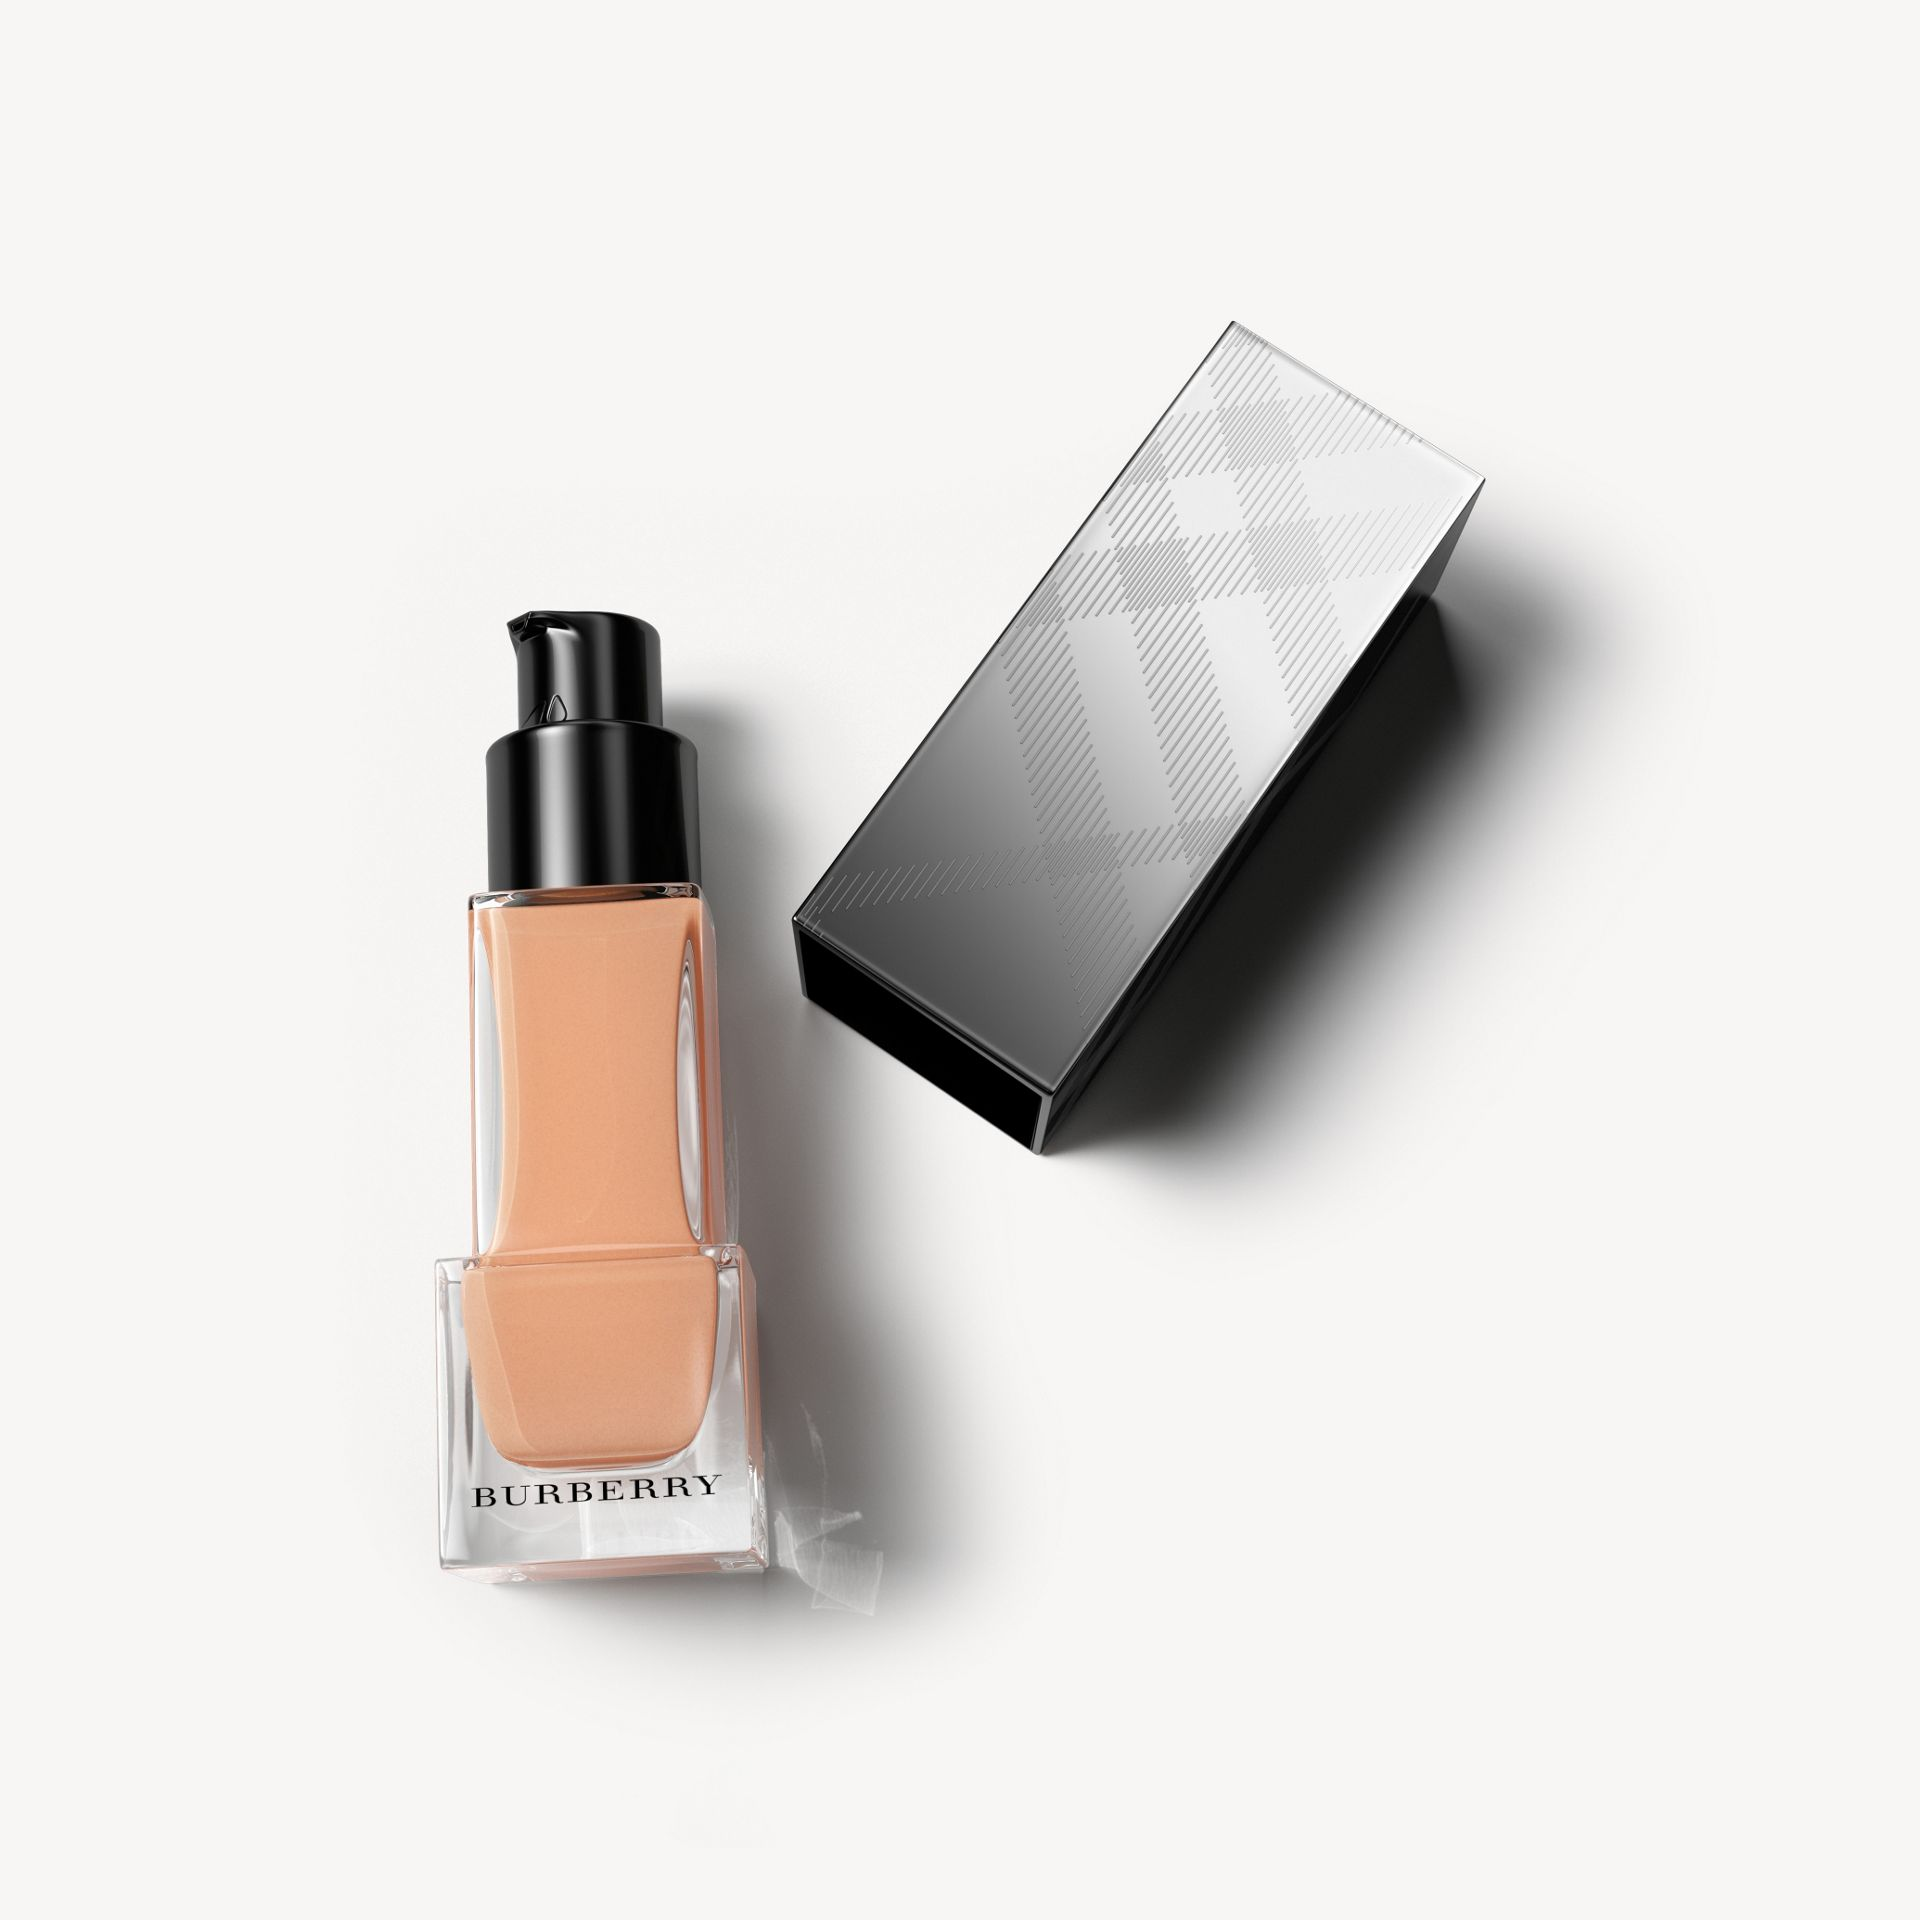 Rosy nude 31 Fresh Glow Foundation Sunscreen Broad Spectrum SPF 12 – Rosy Nude No.31 - gallery image 1